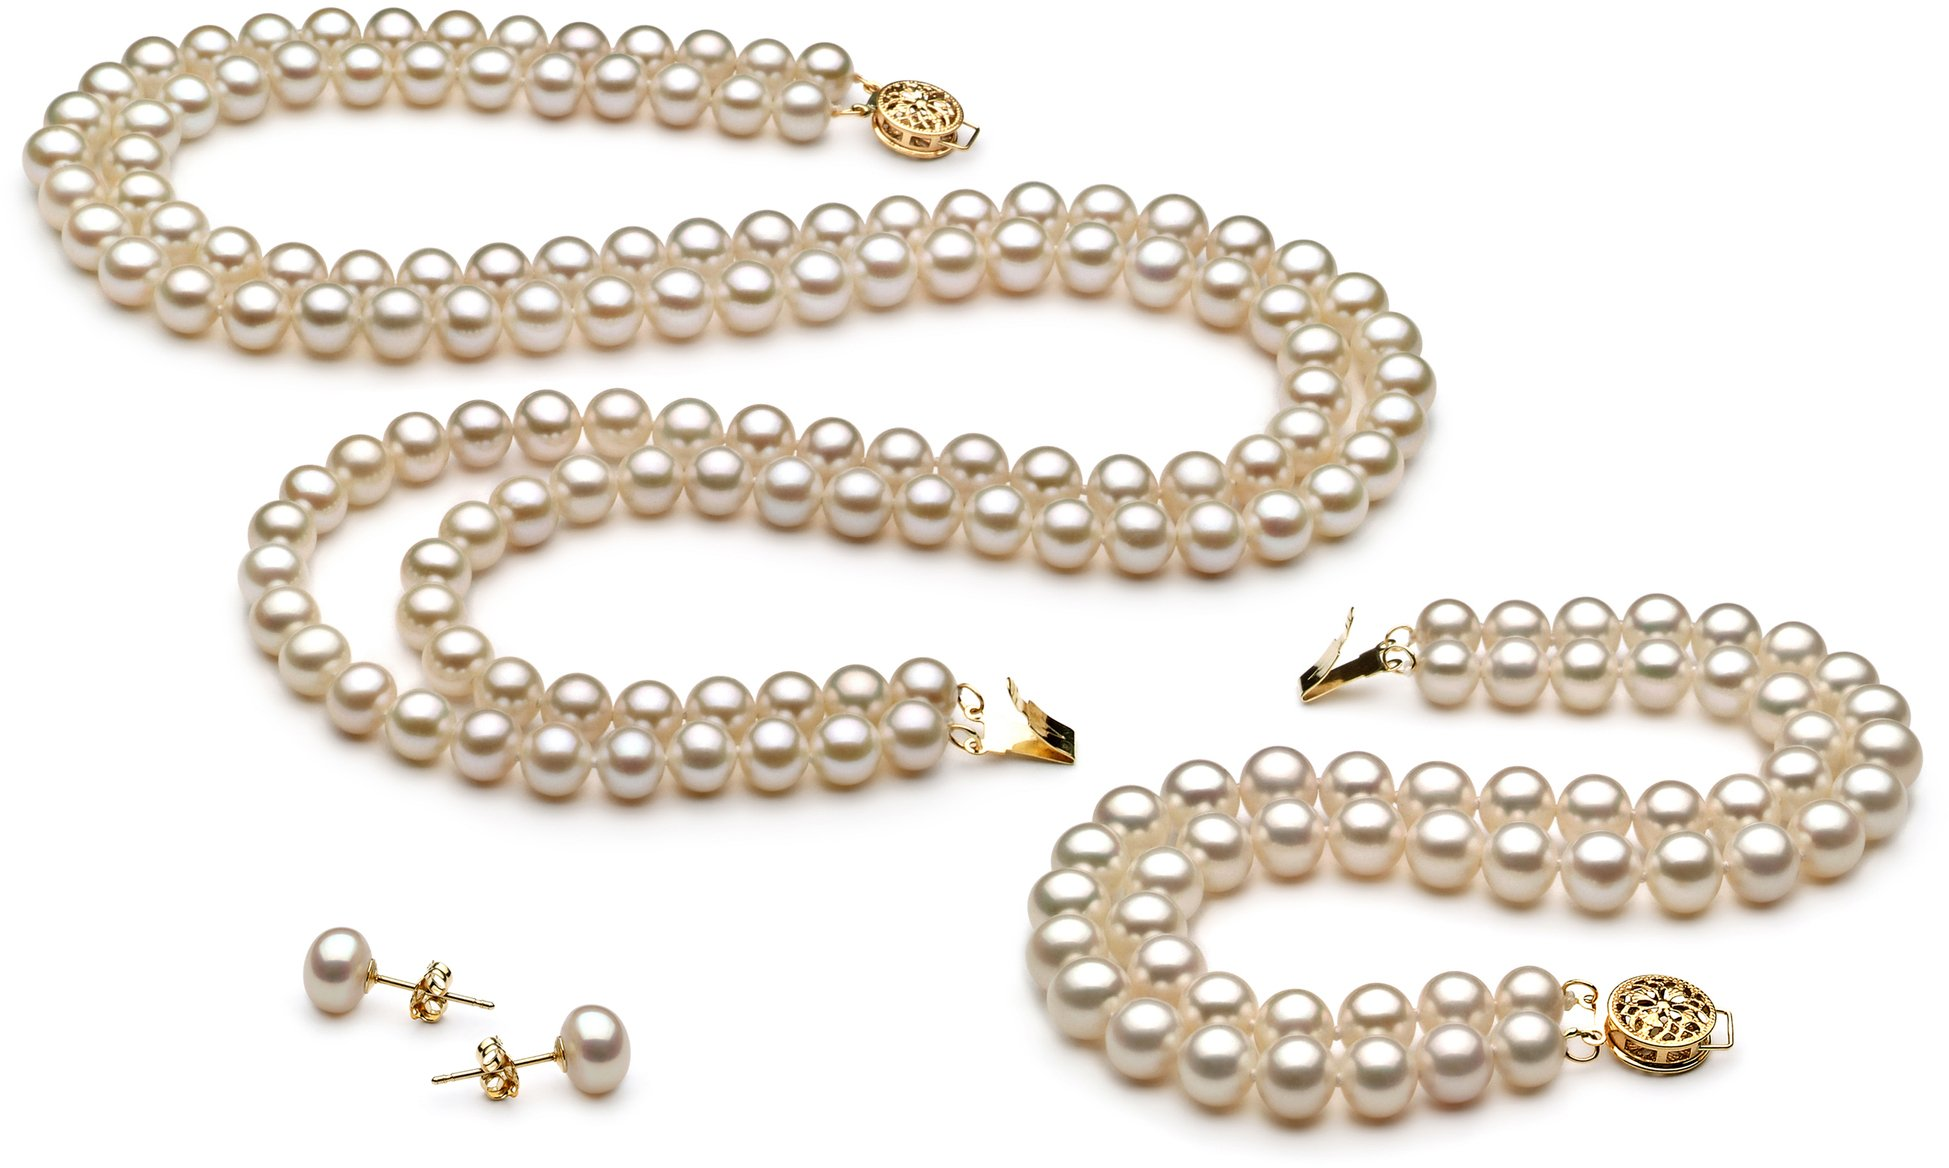 PearlsOnly - Liska White 6-7mm Double Strand AA Quality Freshwater Cultured Pearl Set-18 in Princess length